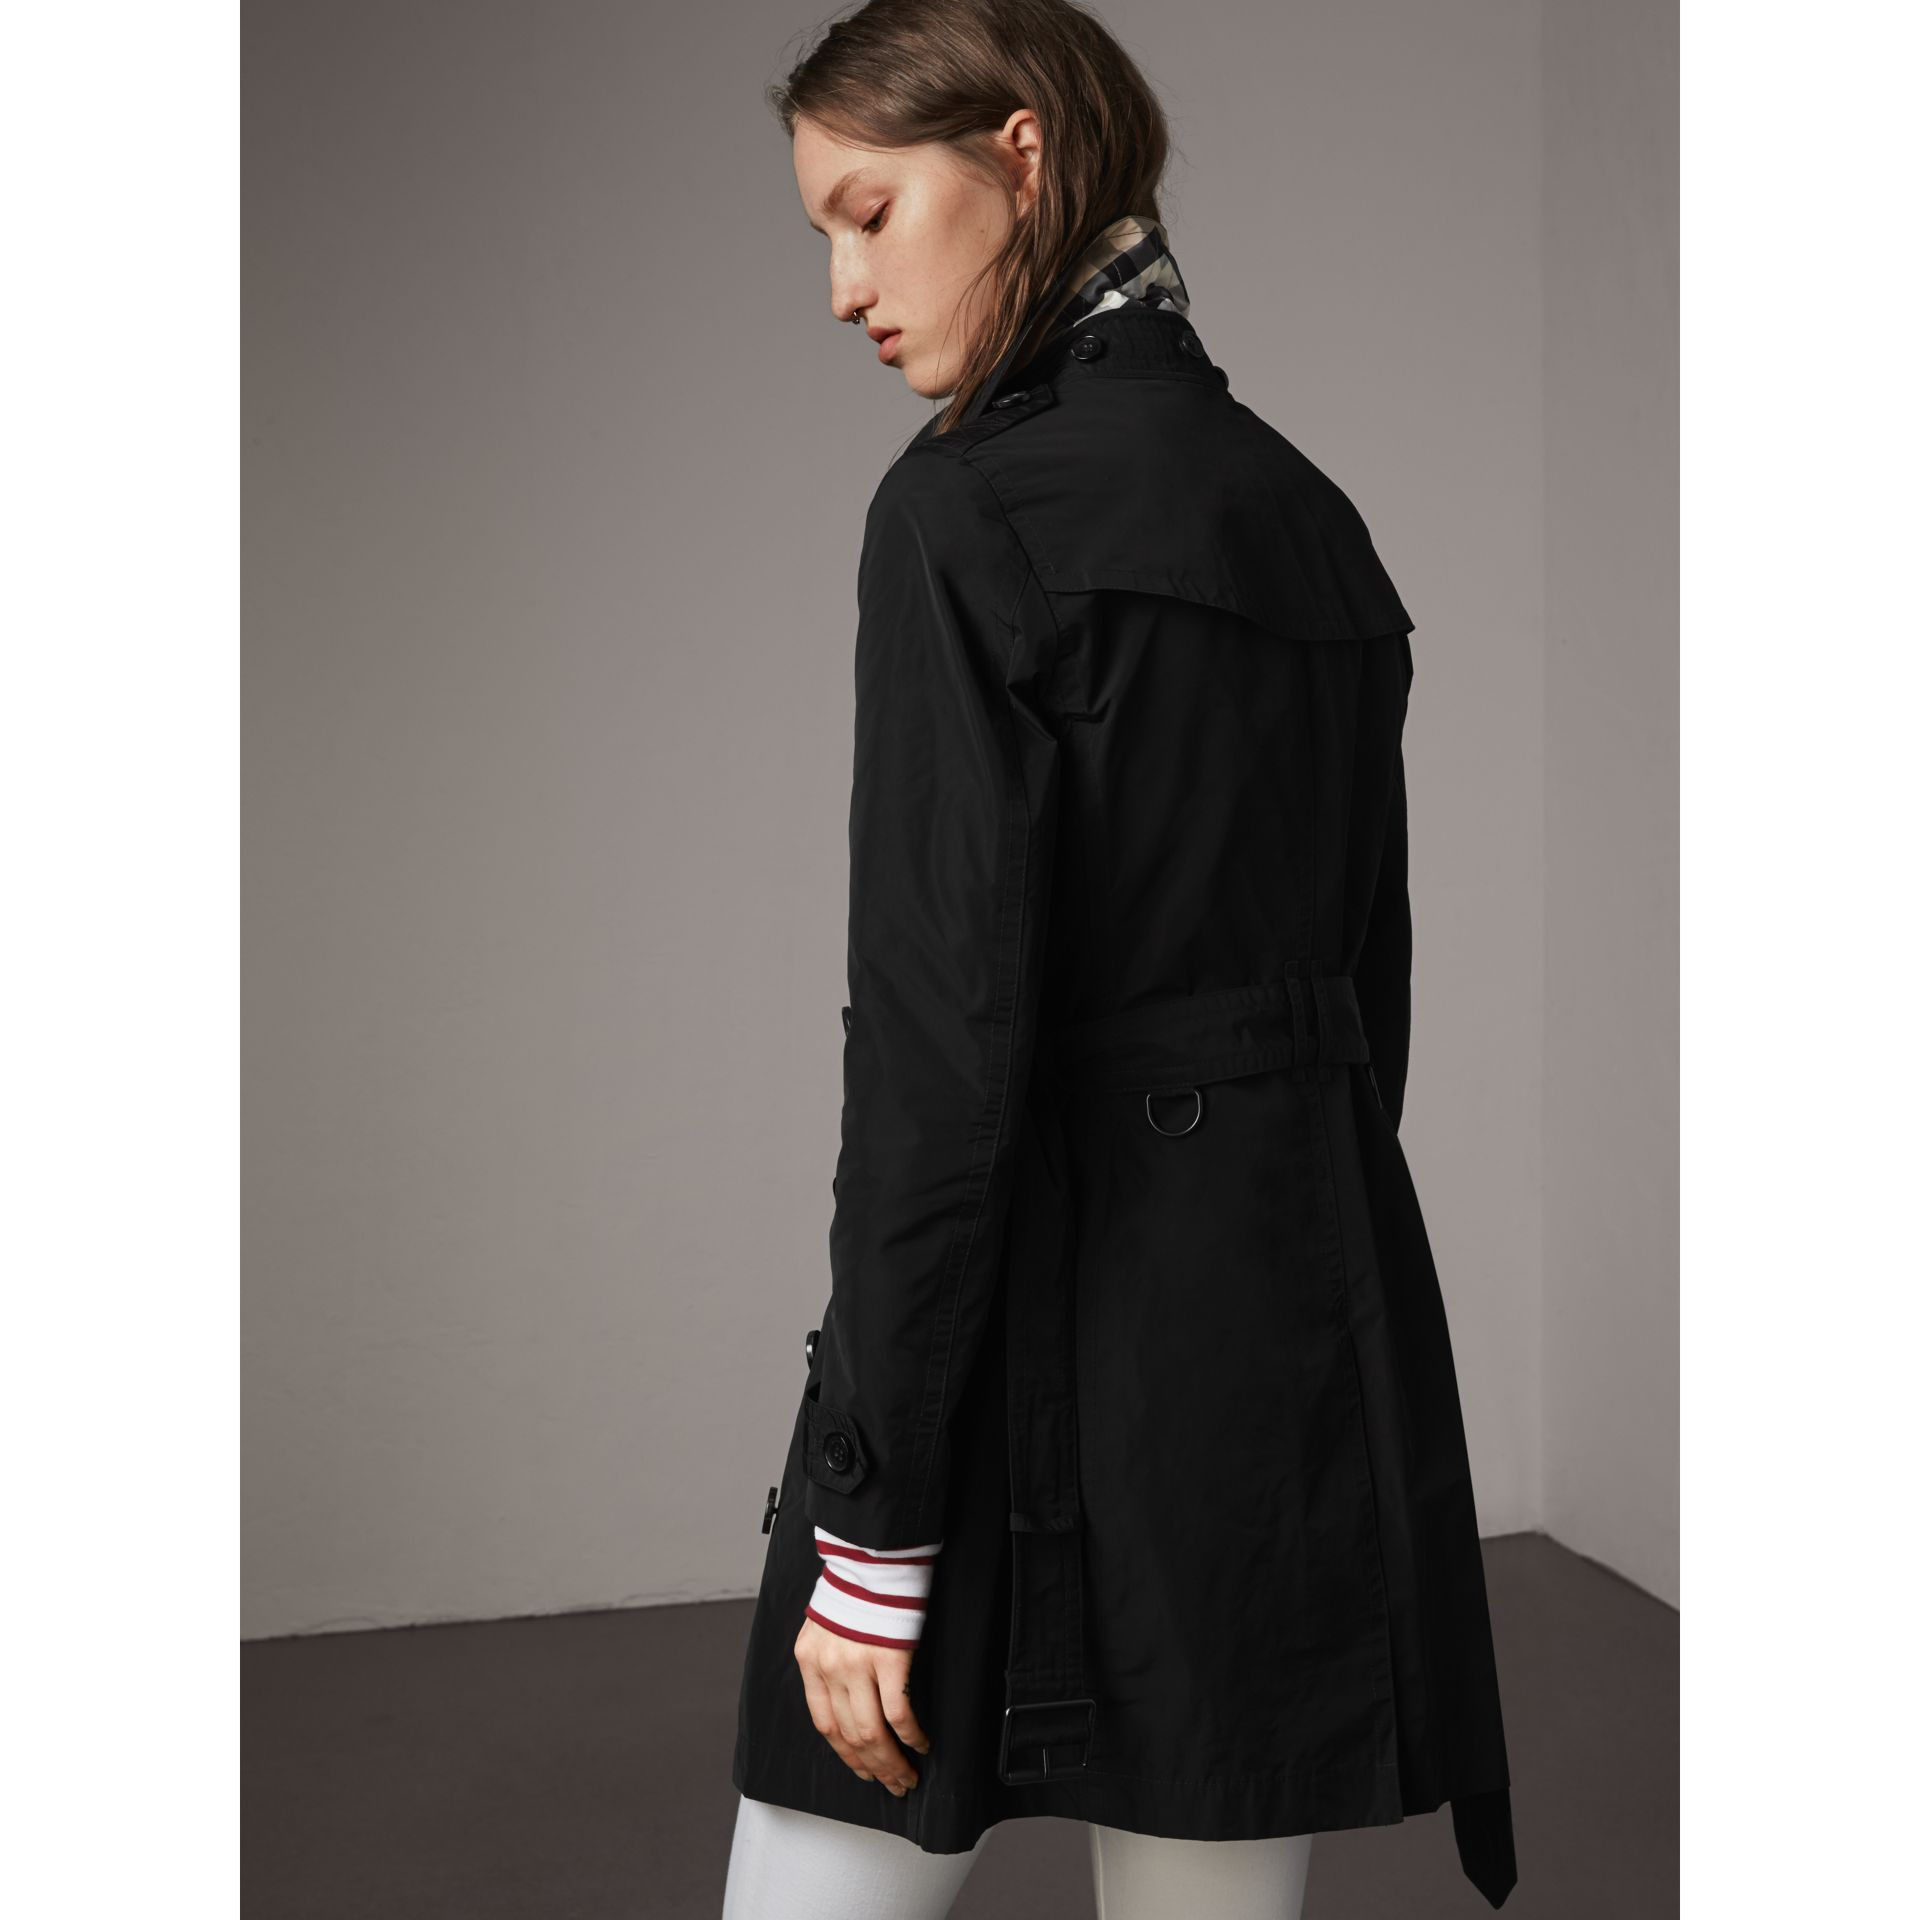 Taffeta Trench Coat with Detachable Hood in Black - Women | Burberry - gallery image 3